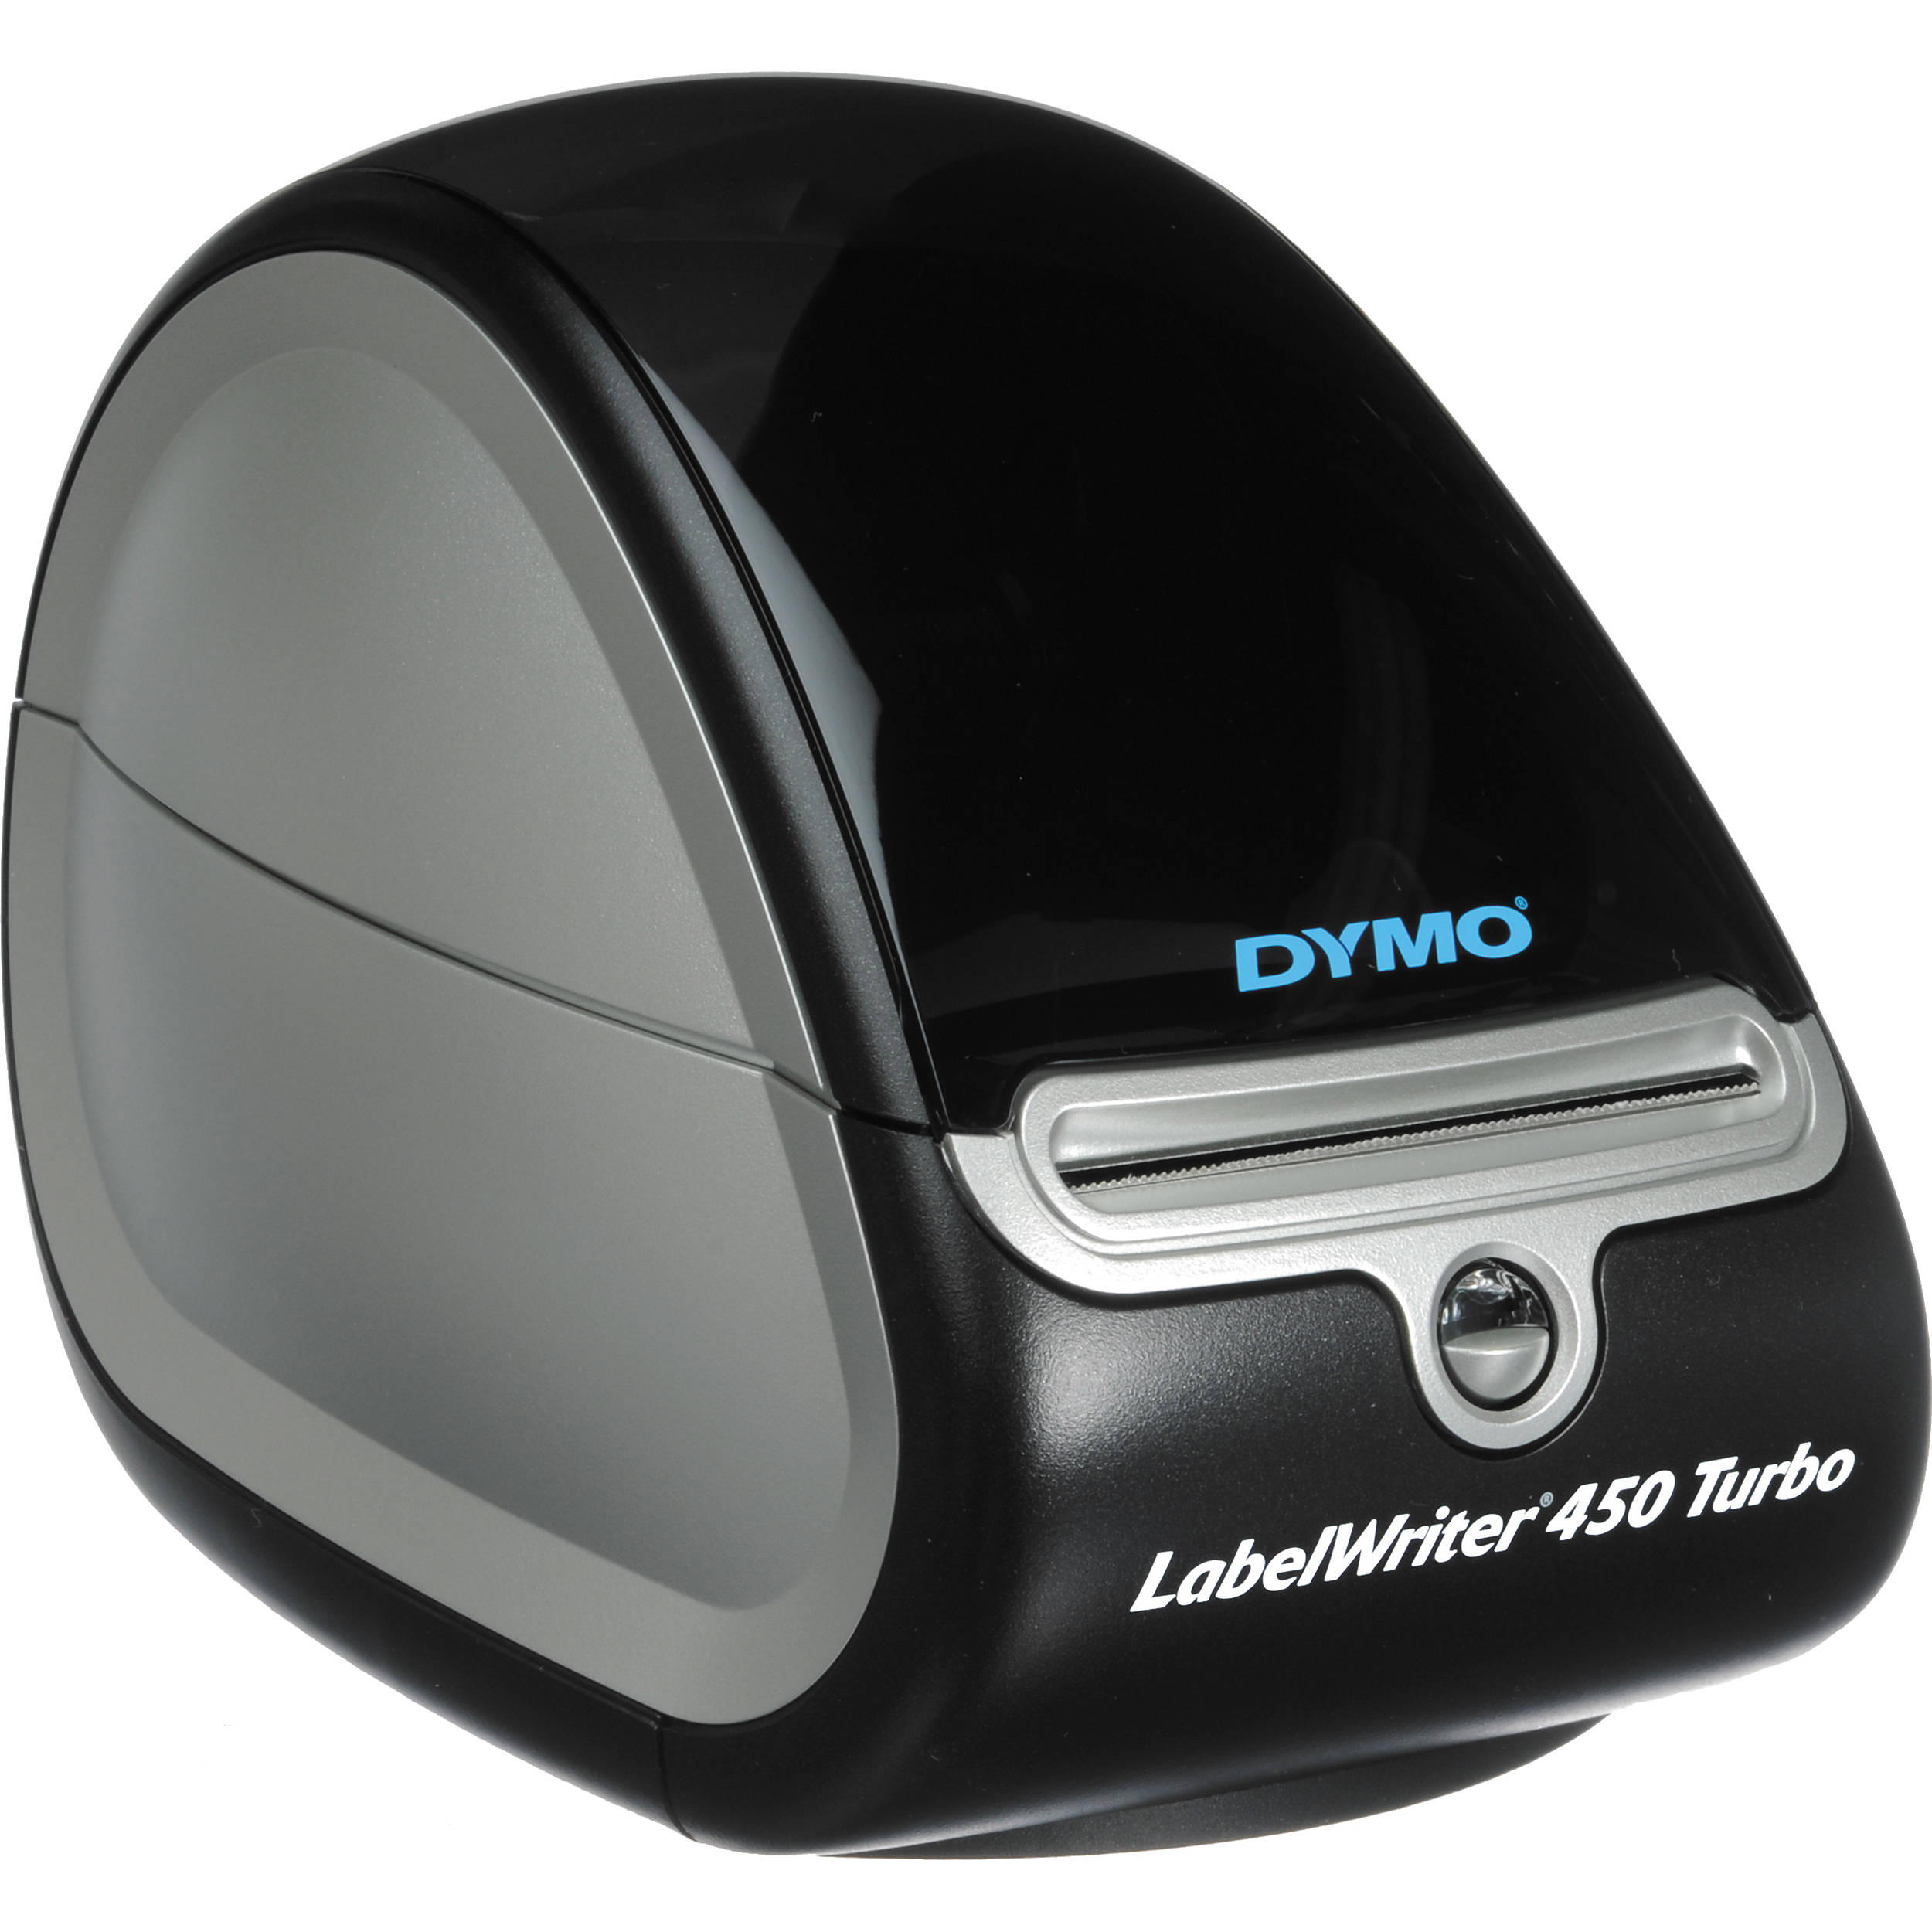 dymo labelwriter 450 turbo usb label printer 1752265 bh photo With dymo labelwriter 450 turbo labels